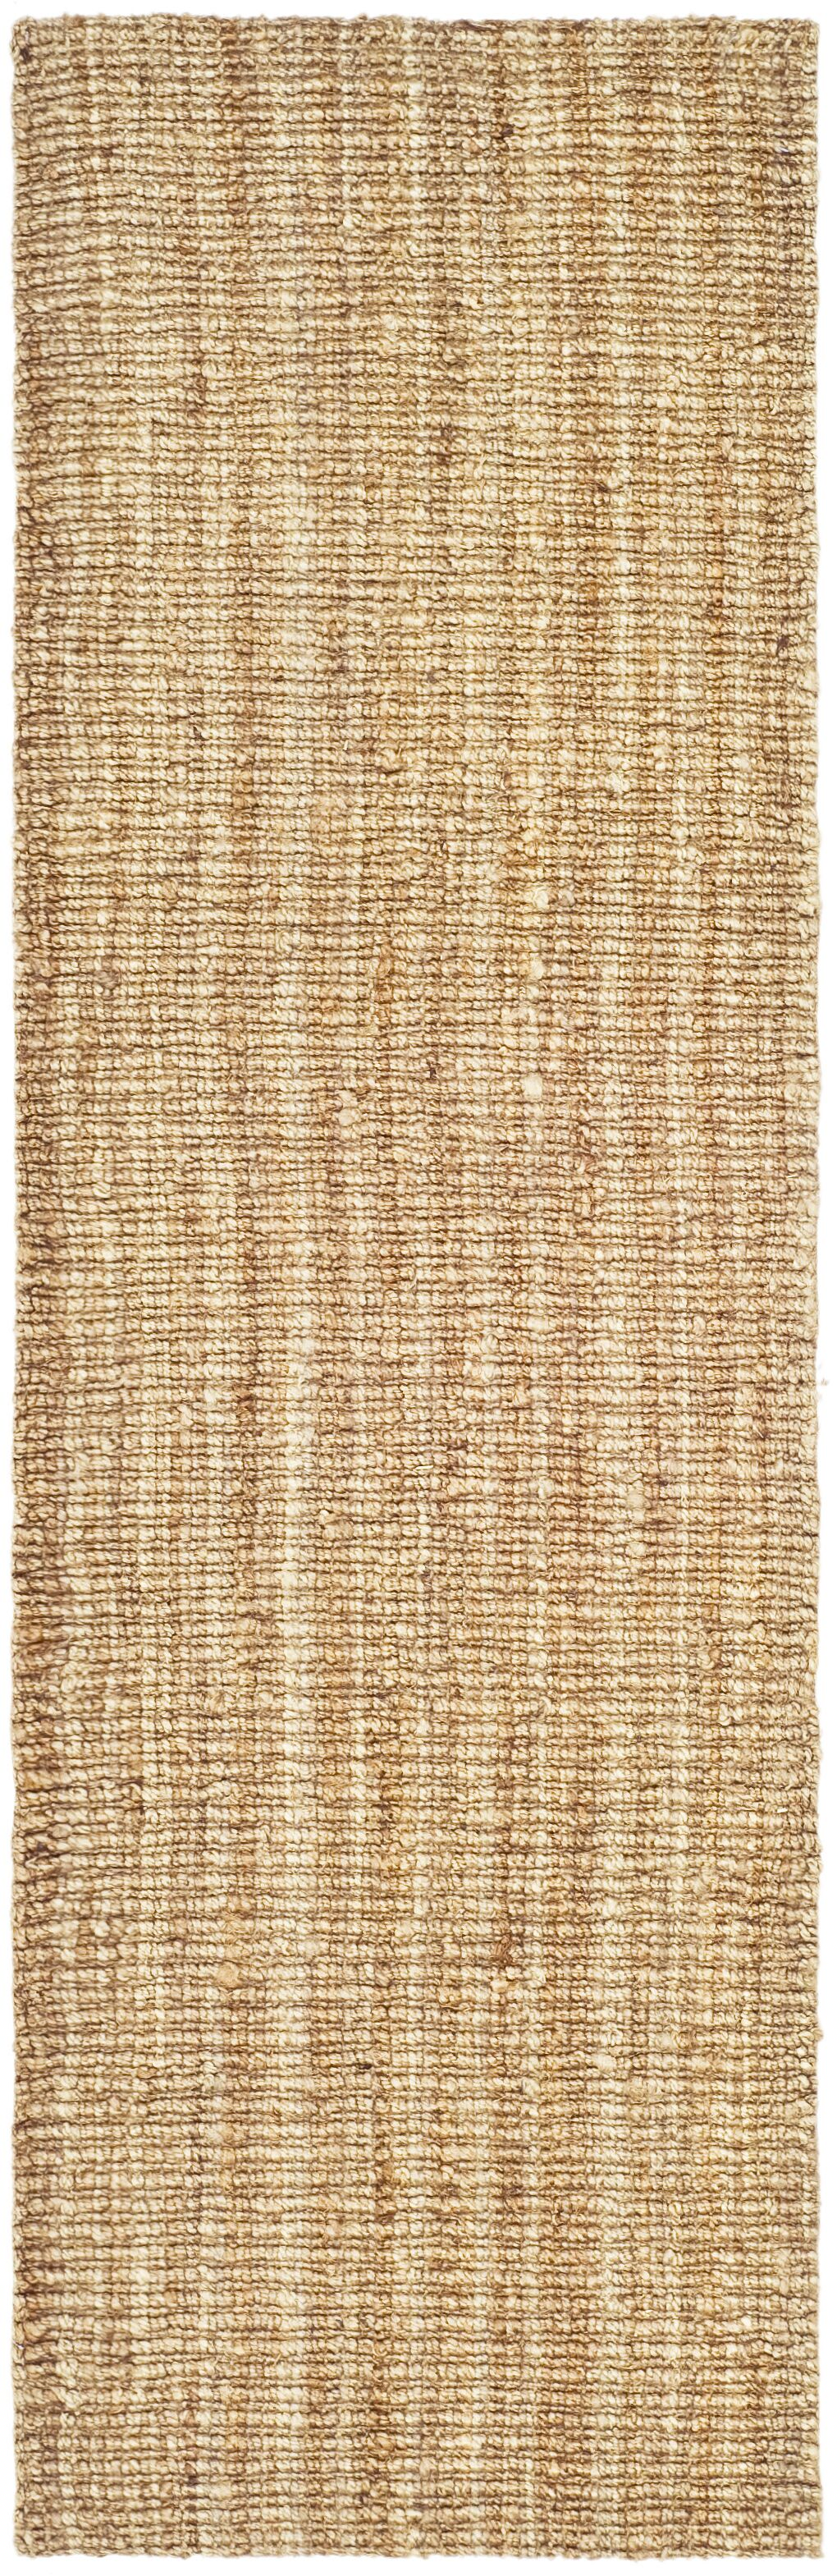 Gaines Power Loom Natural Area Rug Rug Size: Runner 2' x 16'